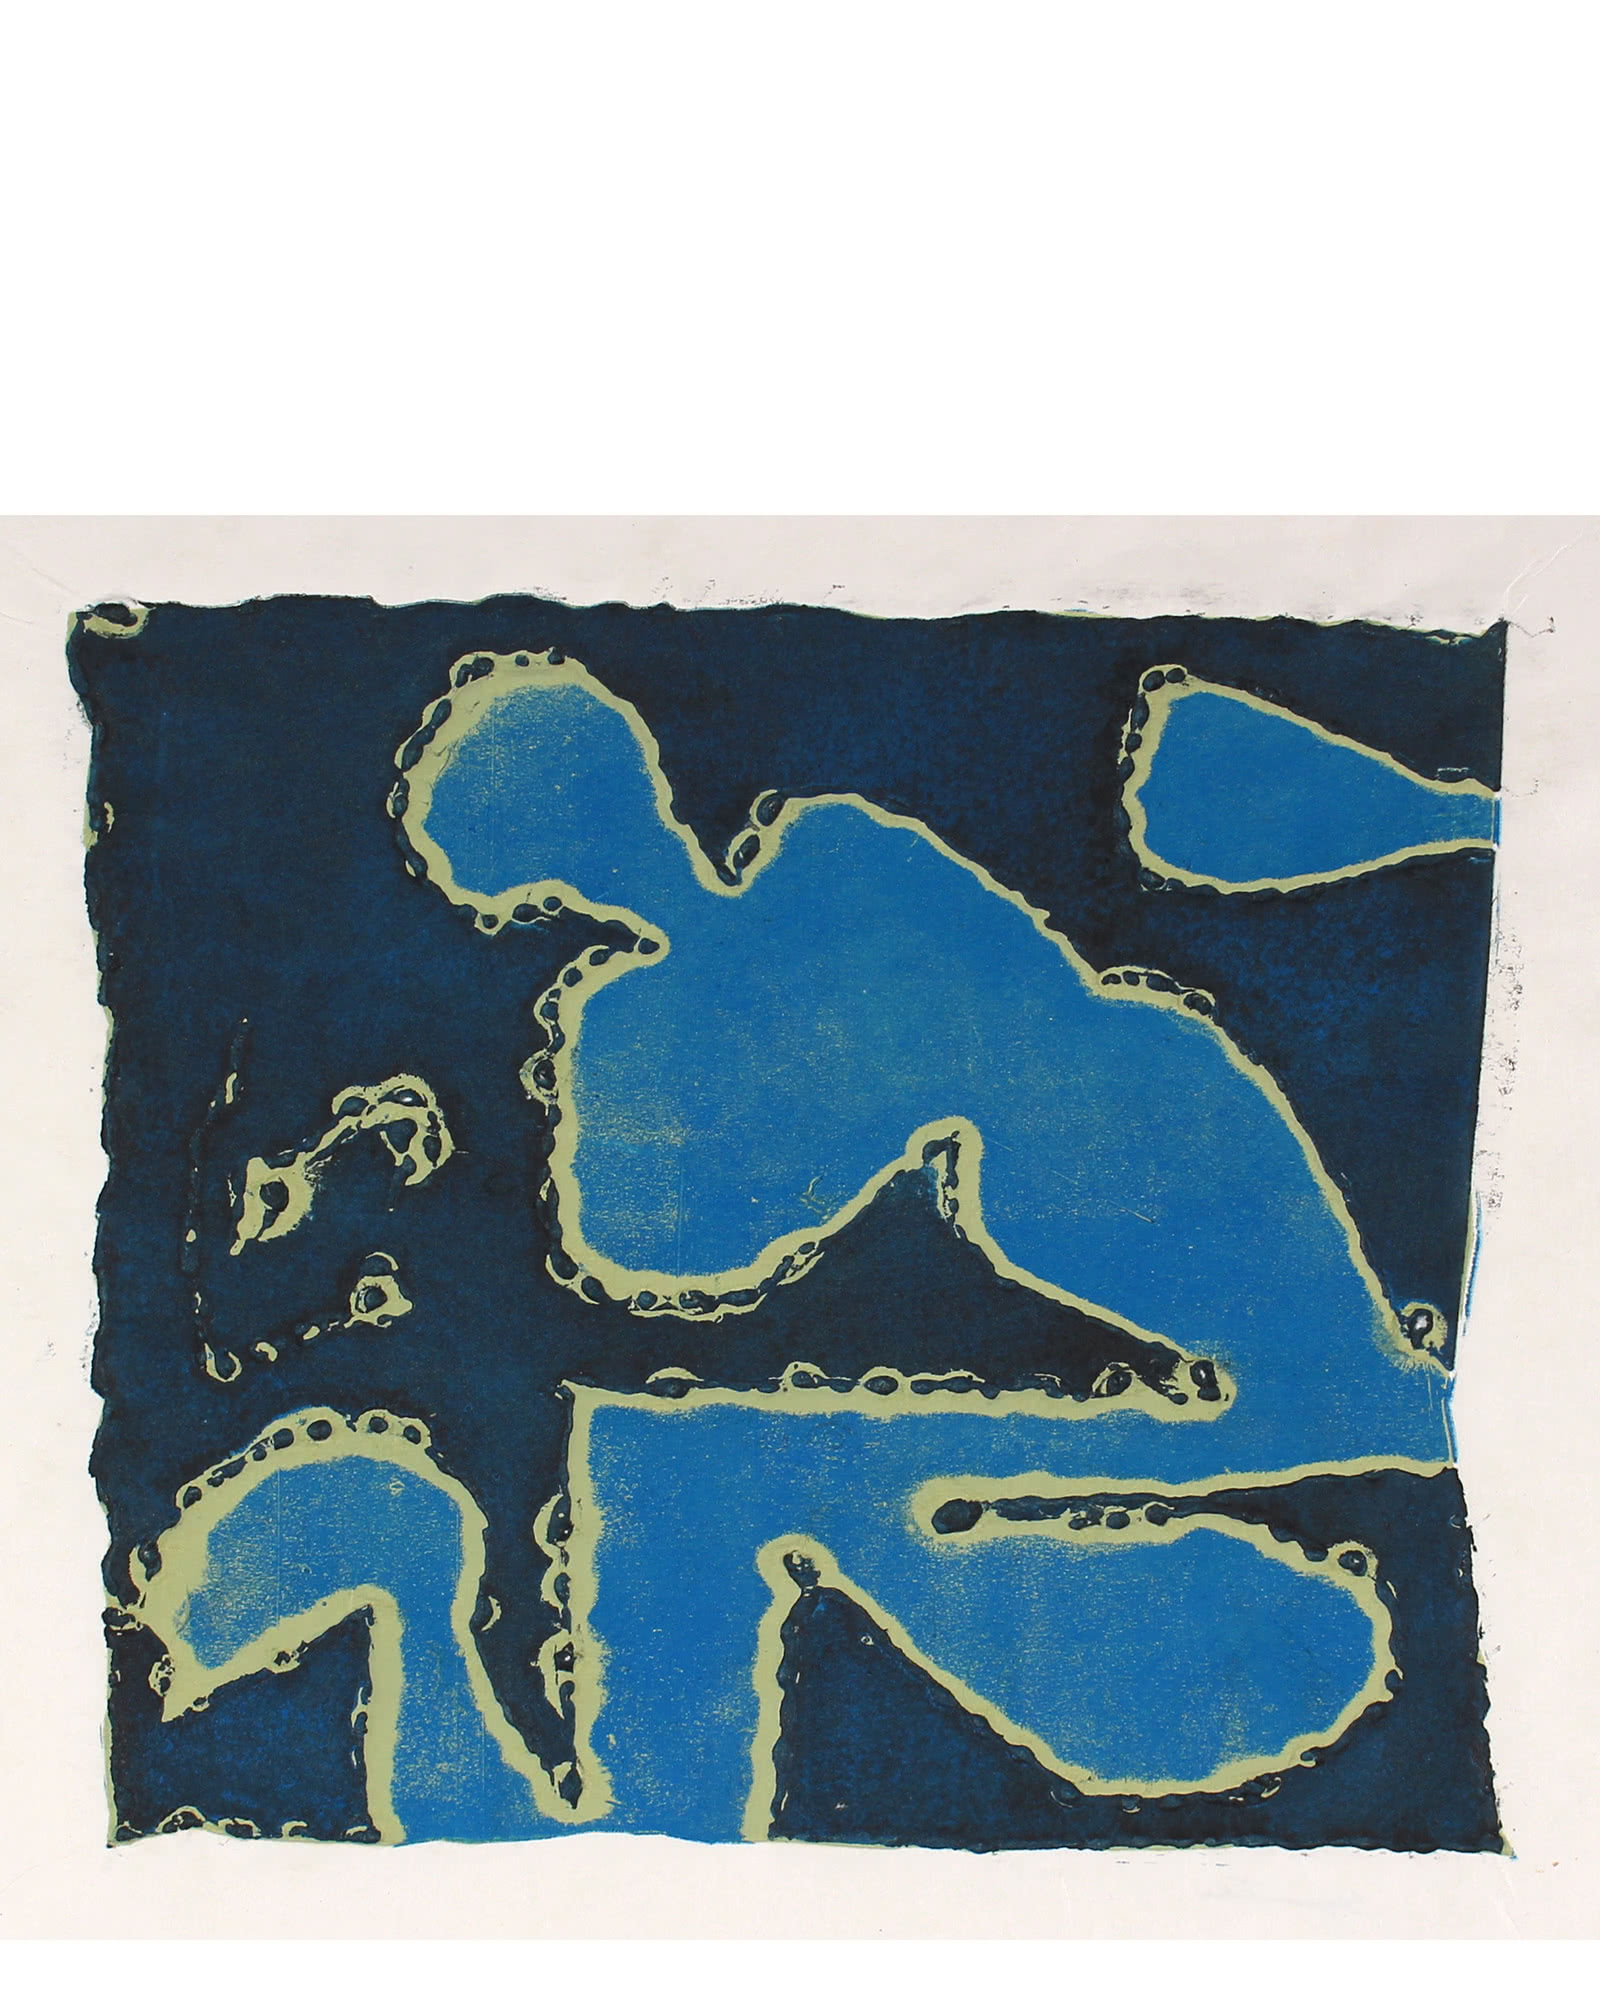 """Abstracted Collograph in Blue"" by Seymour Tubis,"